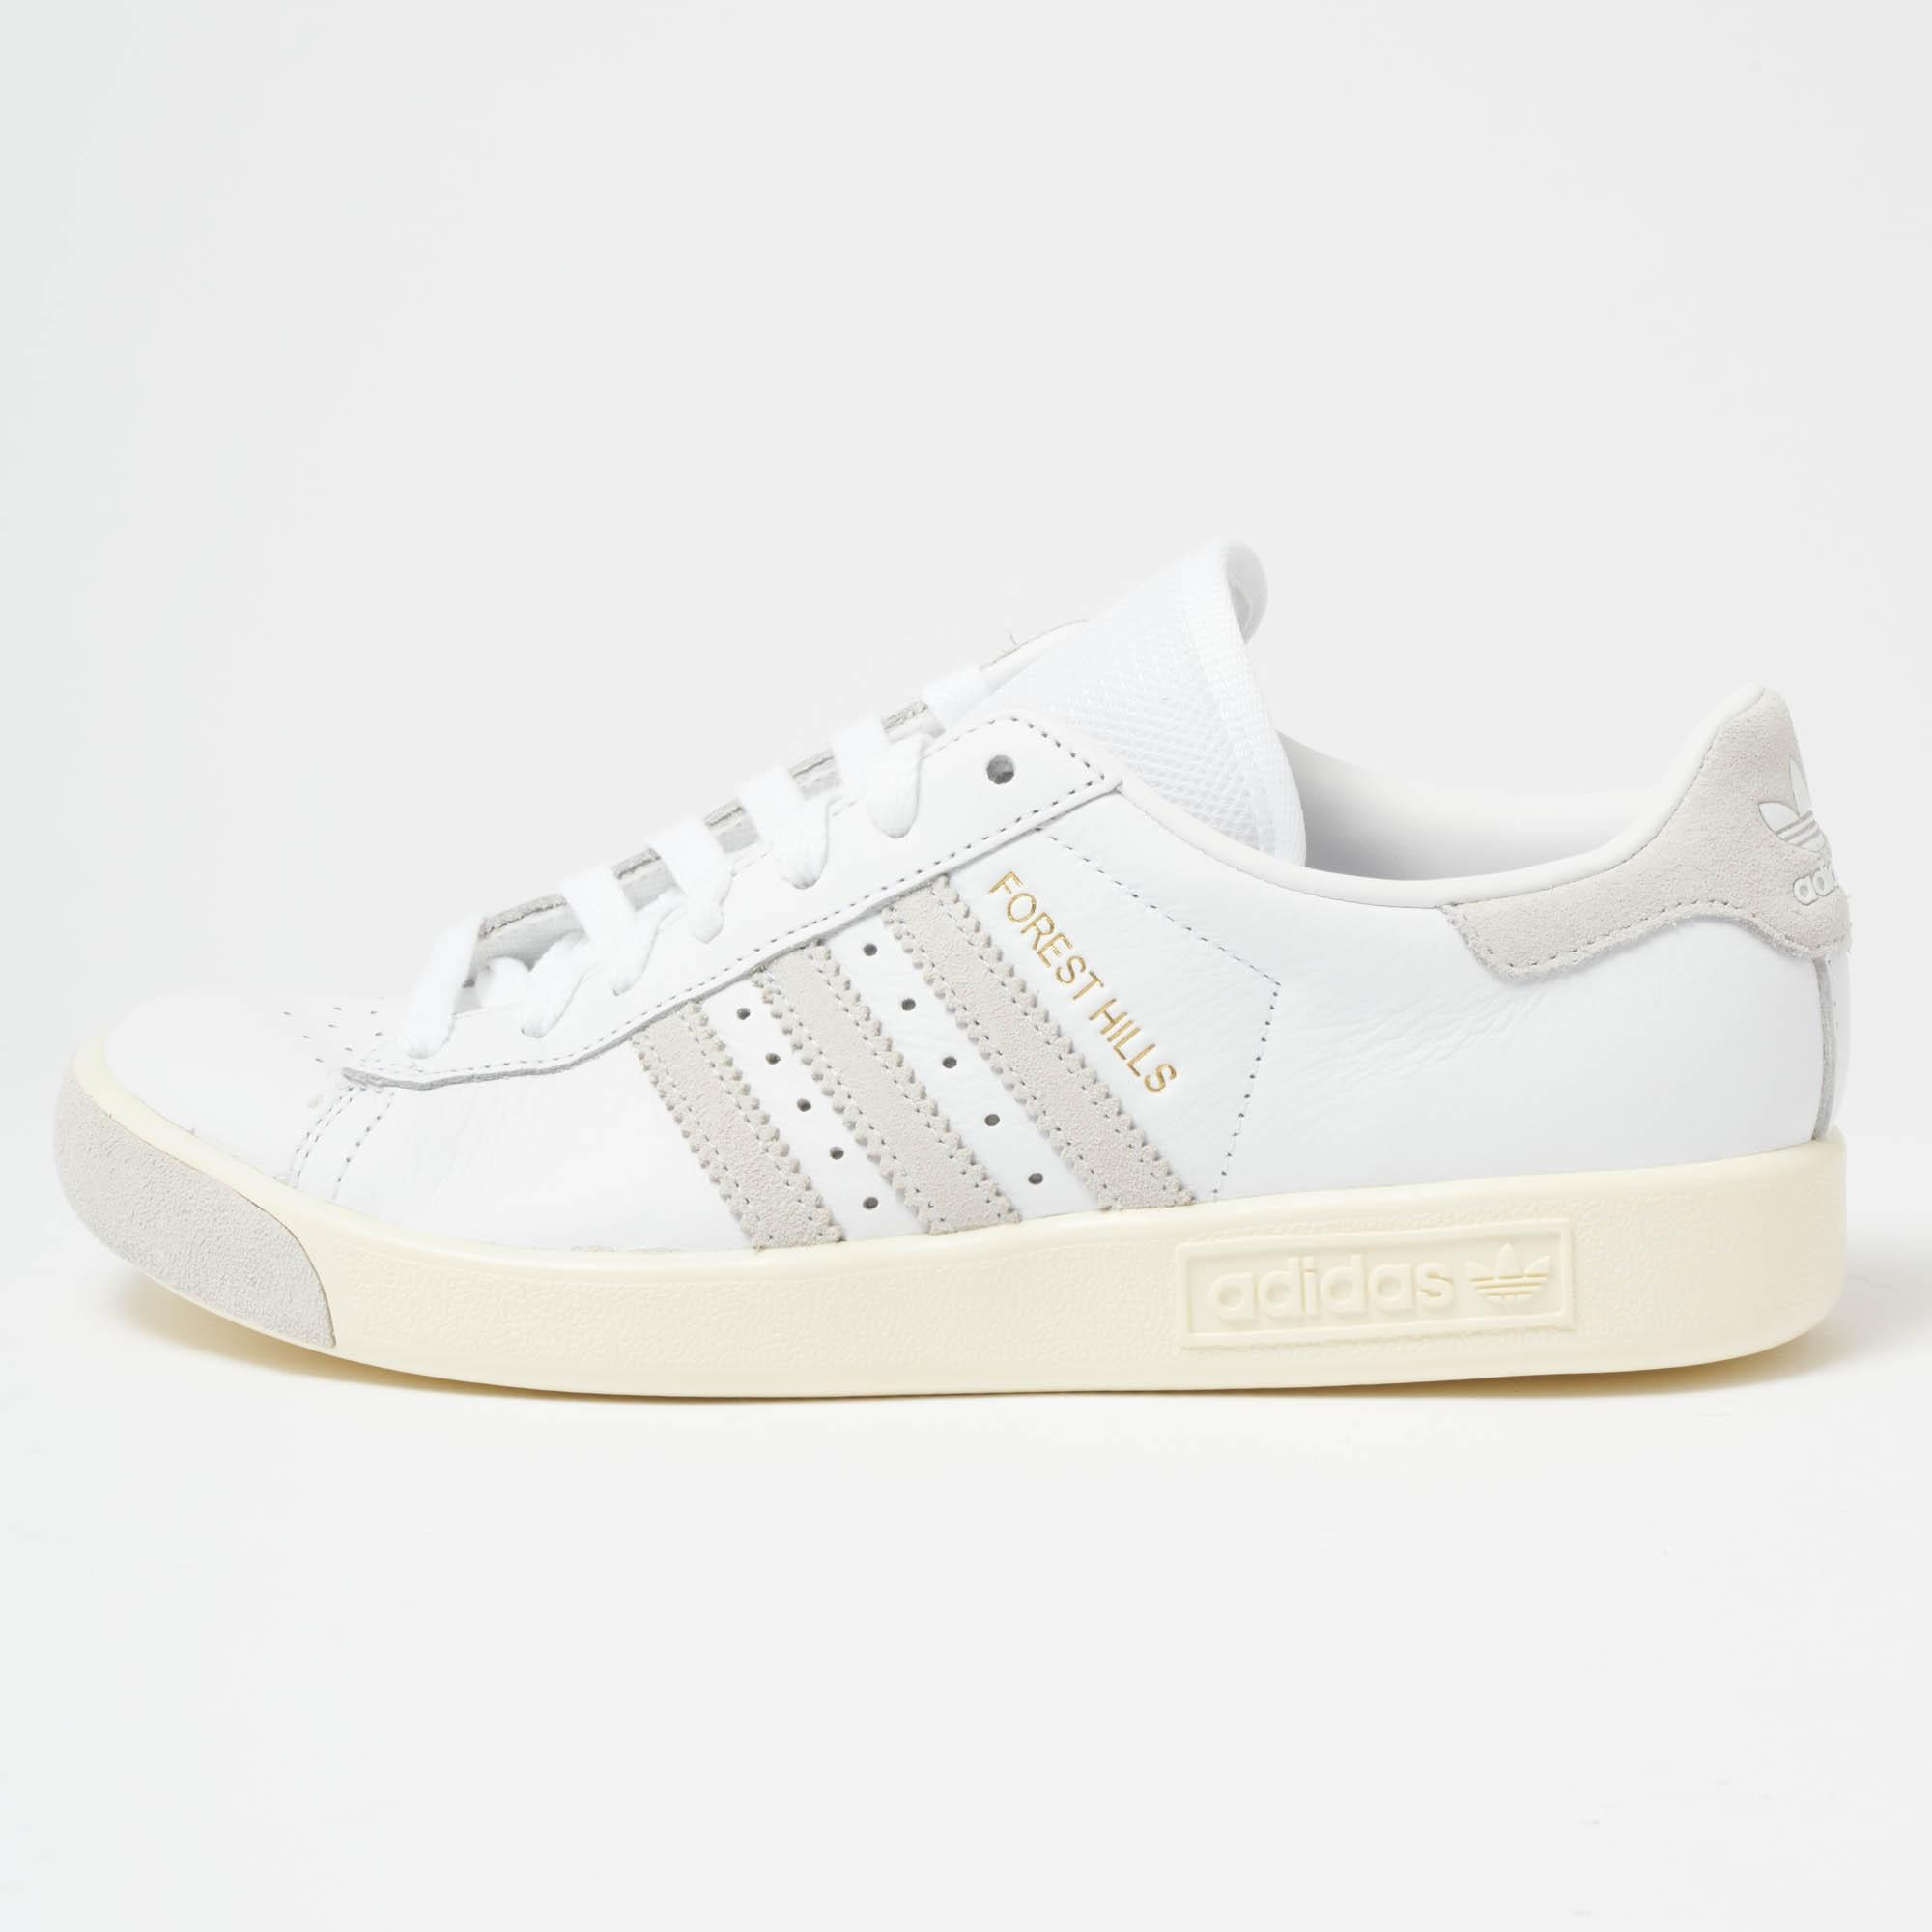 9e19fab1f84cee Lyst - adidas Originals Forest Hills White   Crystal Trainer in ...